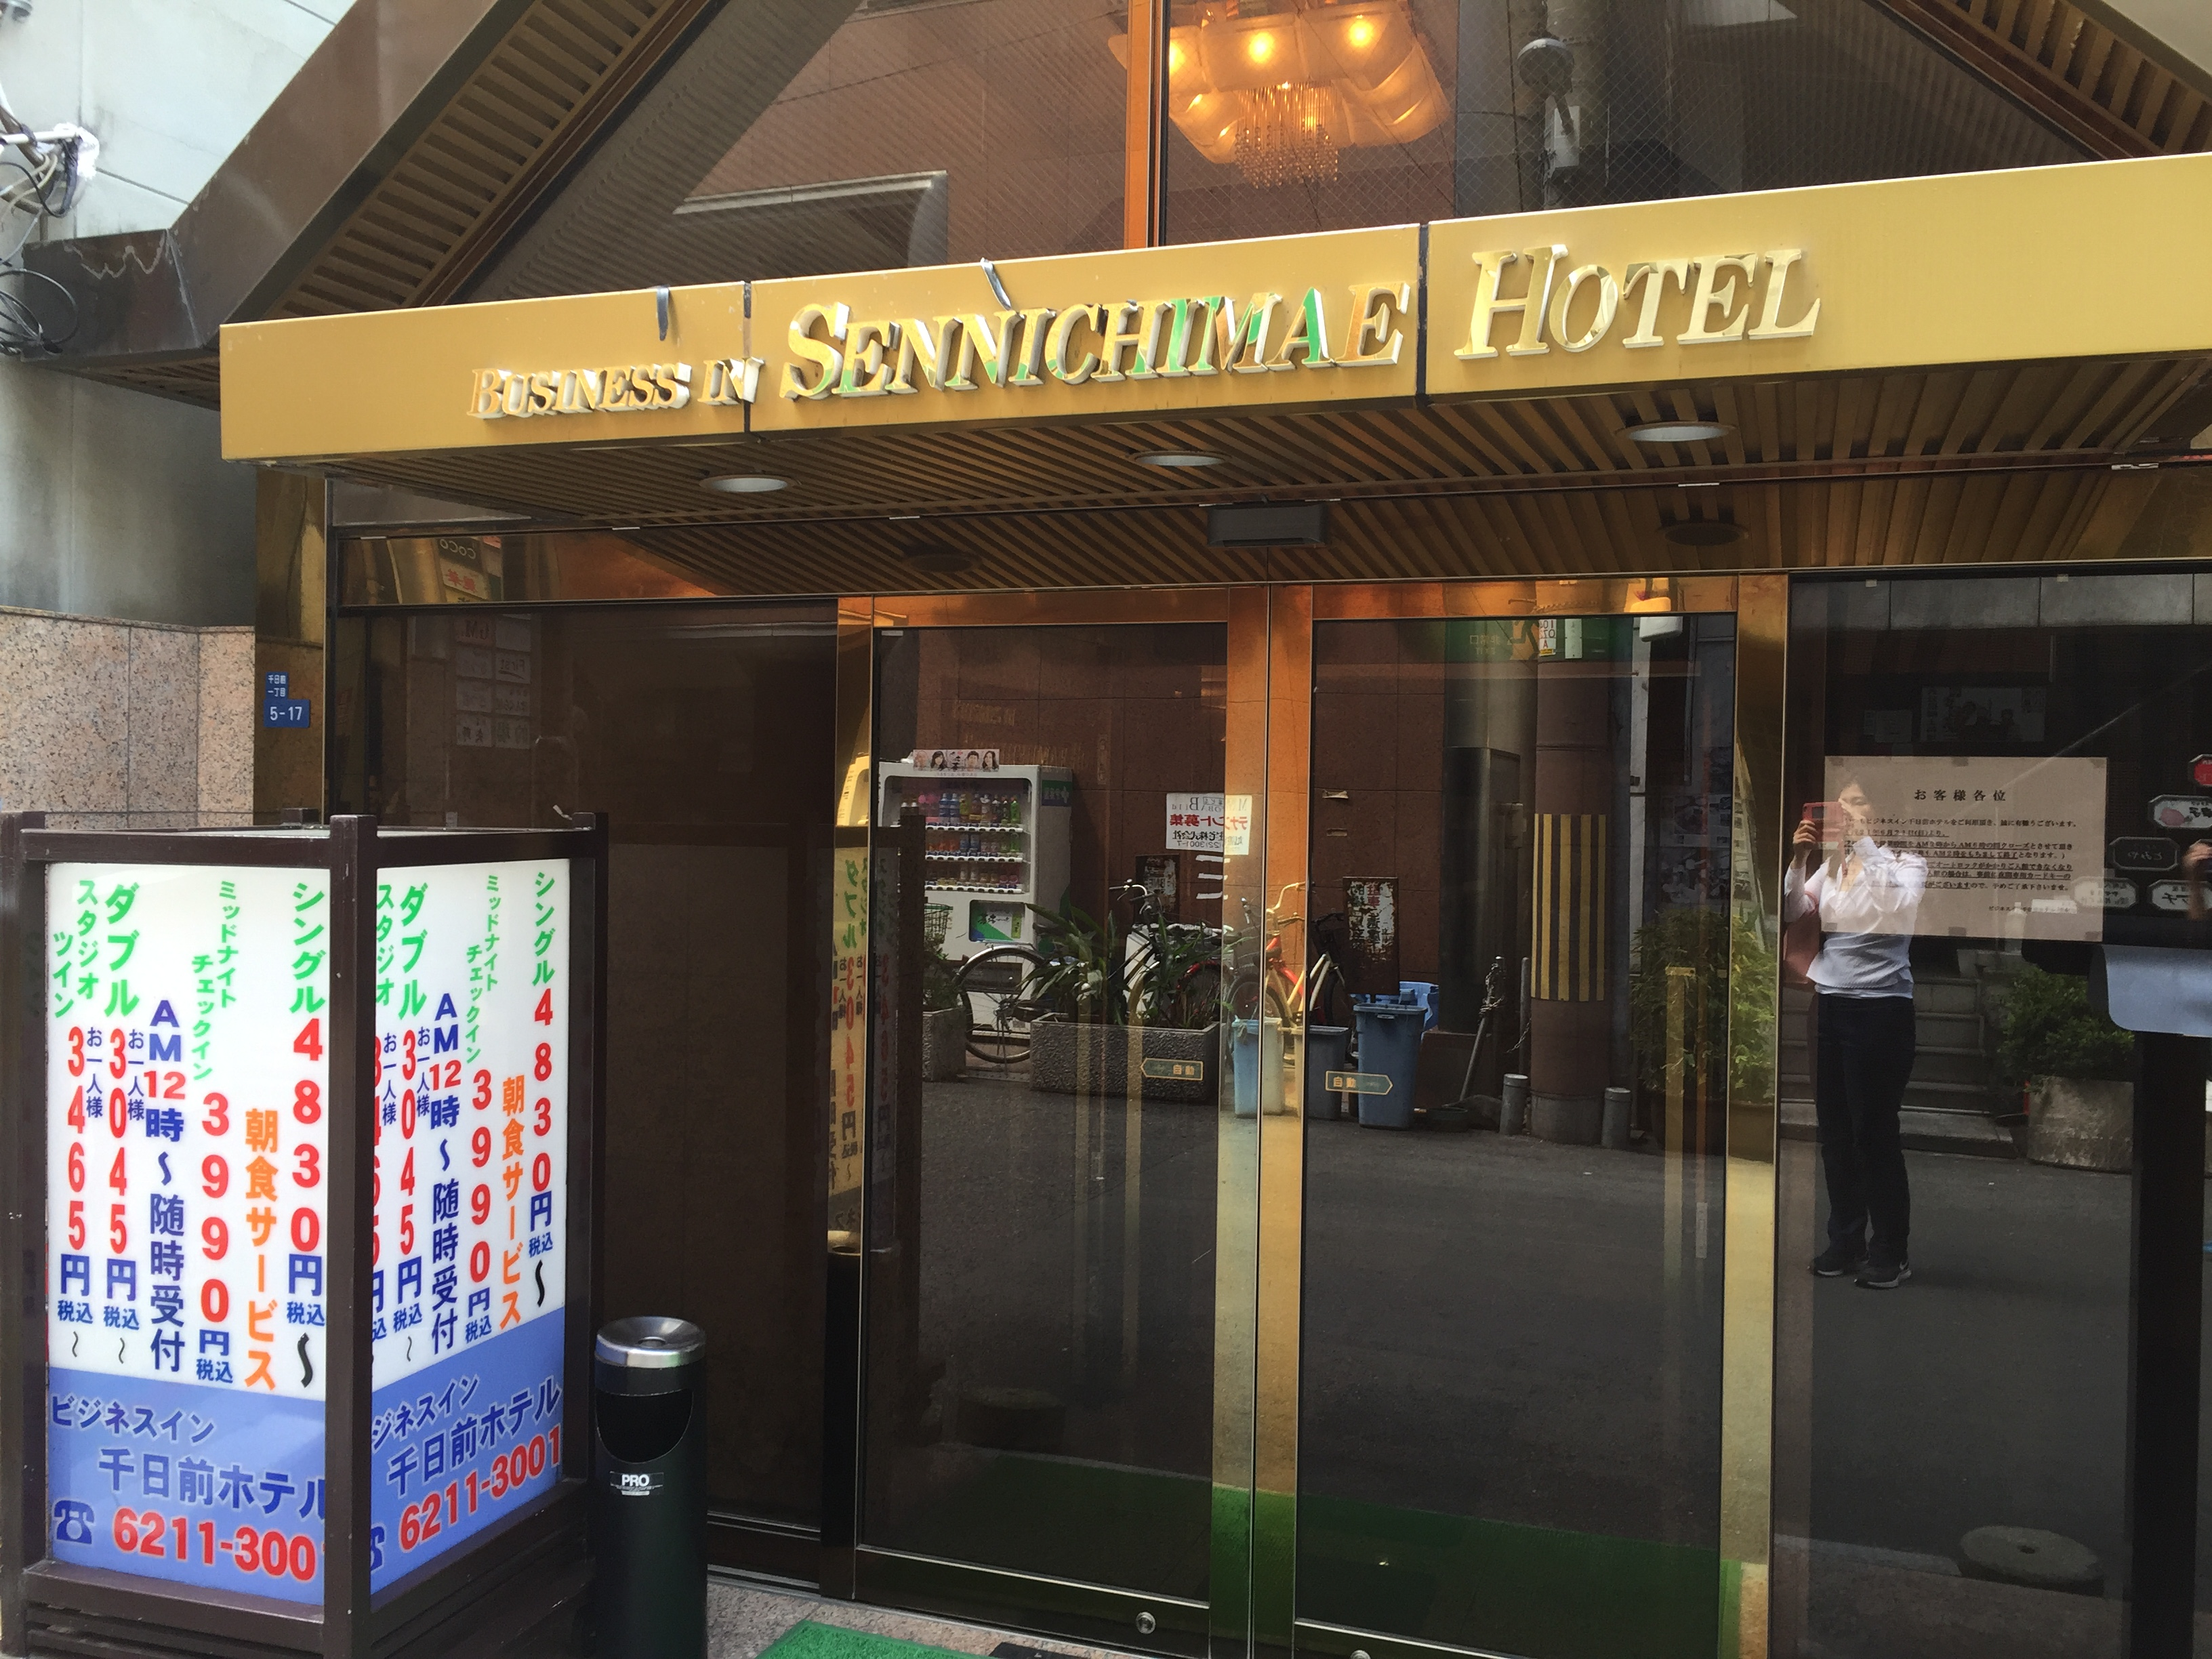 Business inn Sennichimae